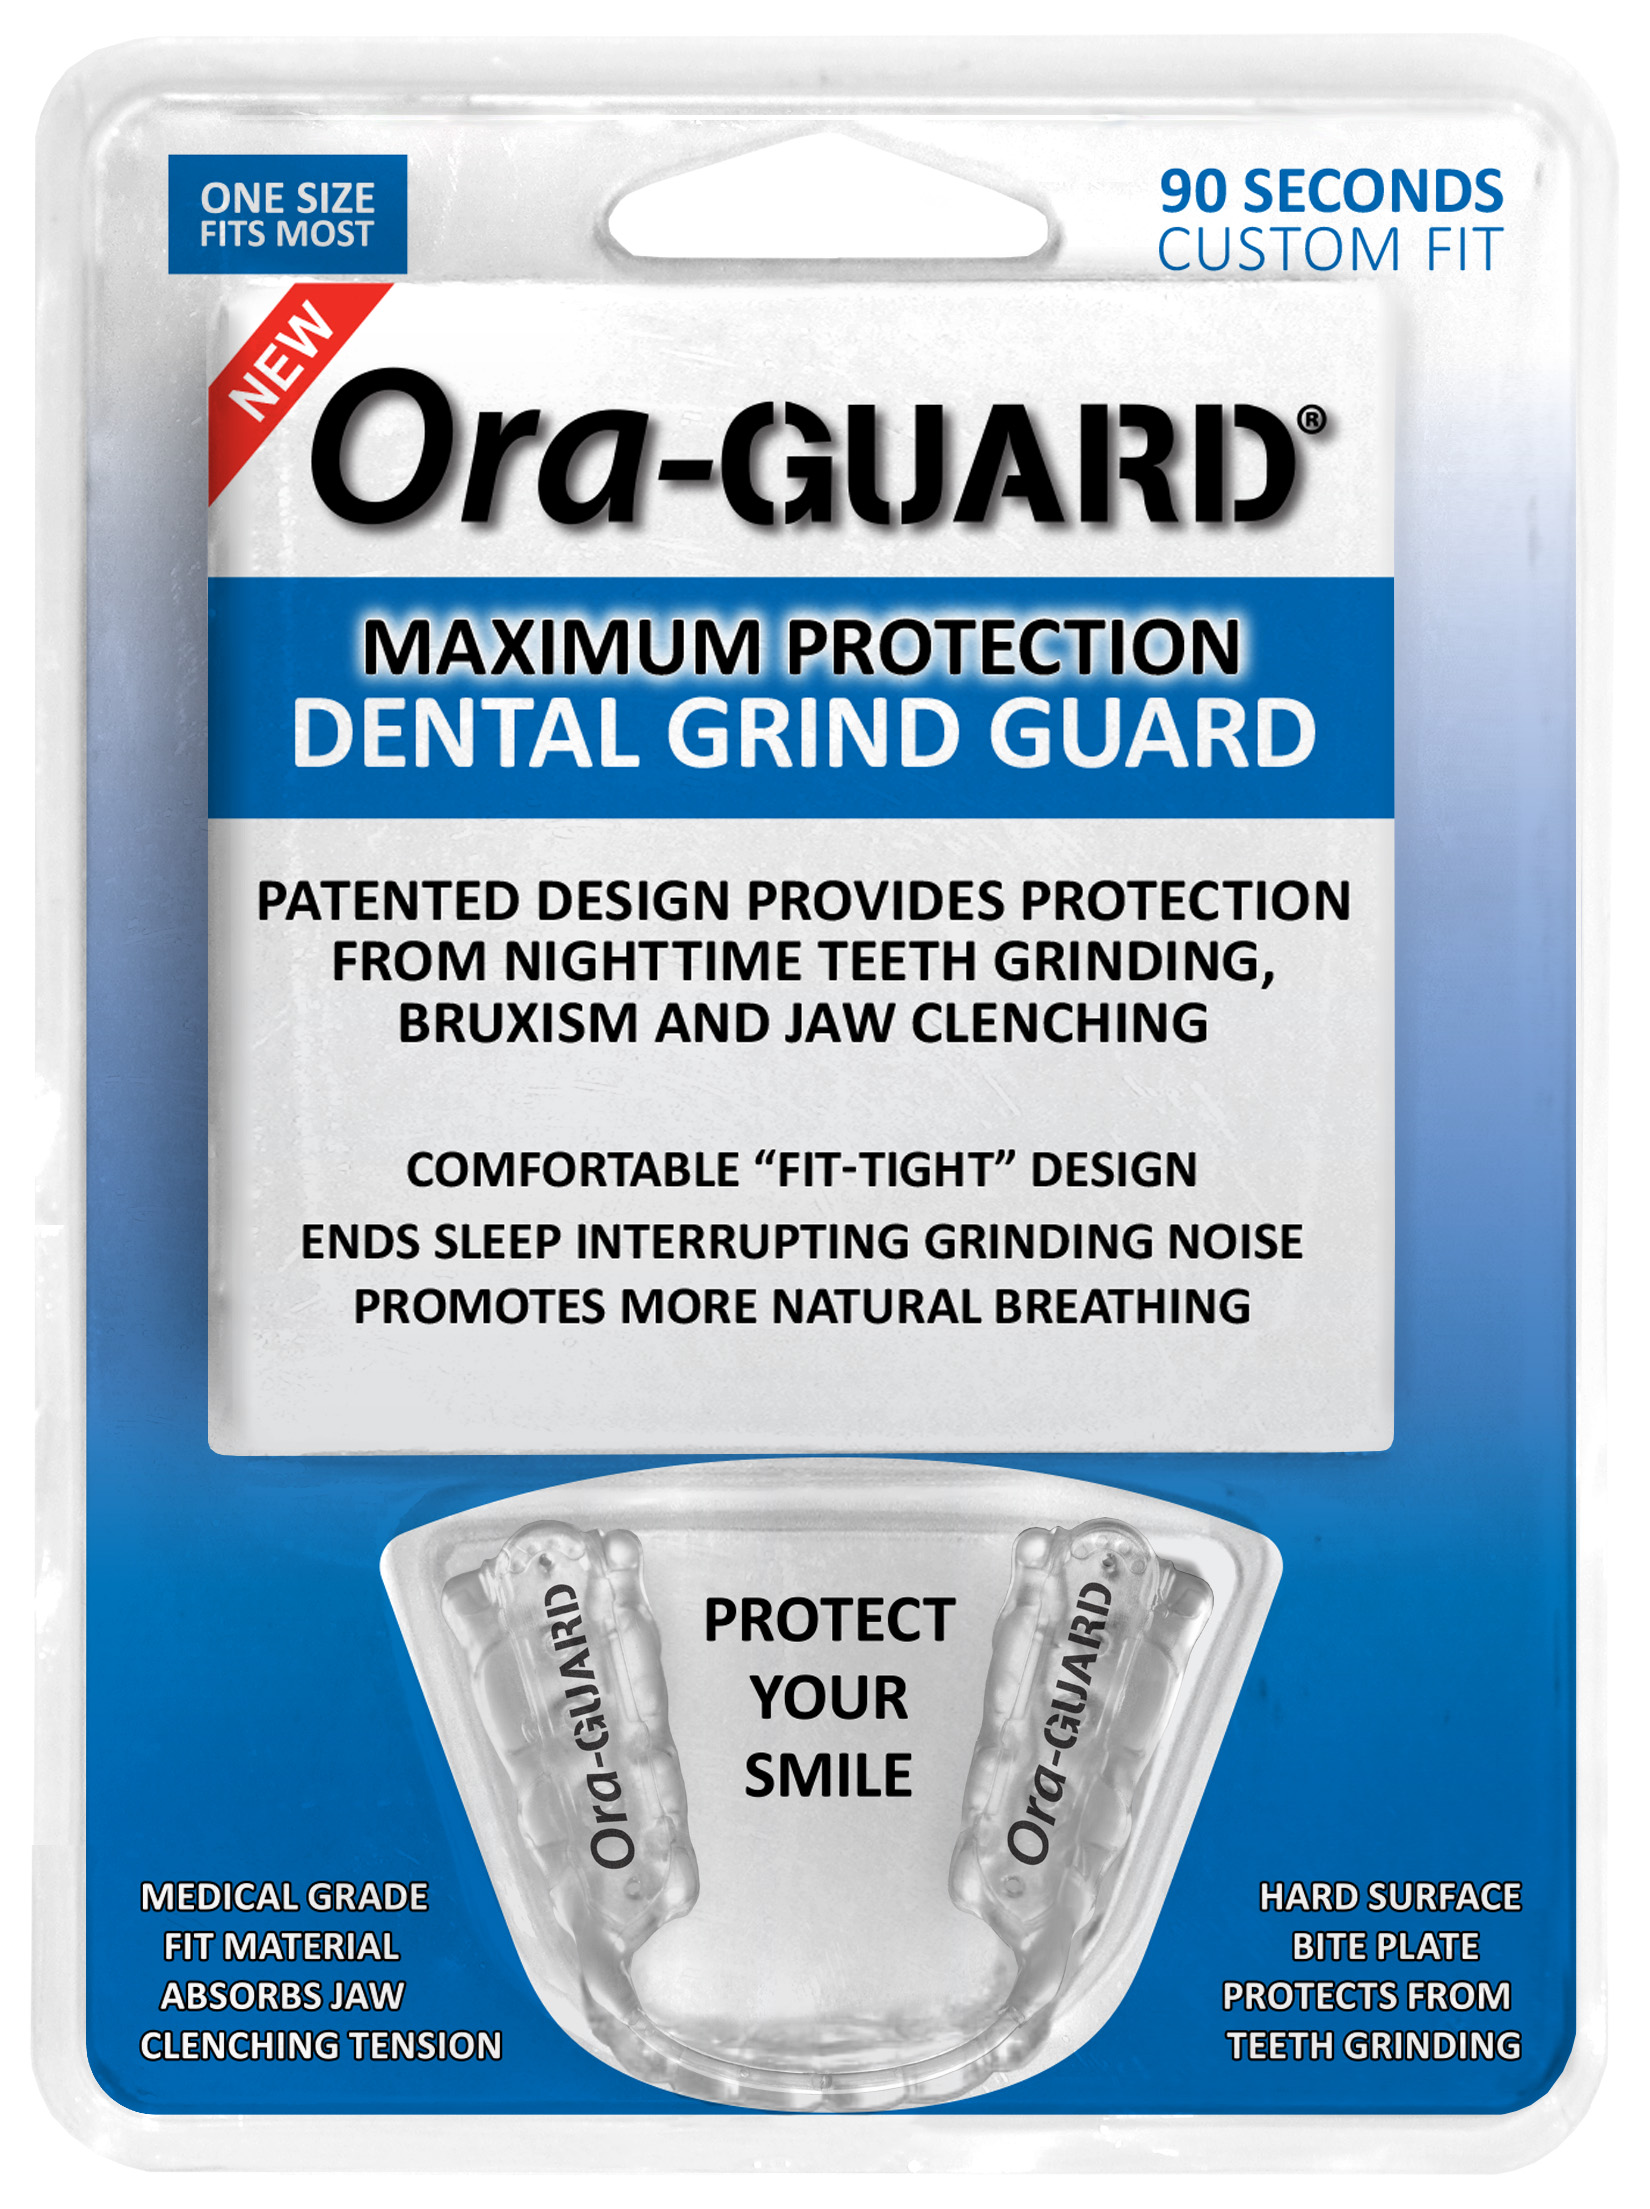 Mouth Guard For Grinding Teeth Walgreens : mouth, guard, grinding, teeth, walgreens, Ora-GUARD®, Dental, Grind, Guard, Available, Walgreens, Stores